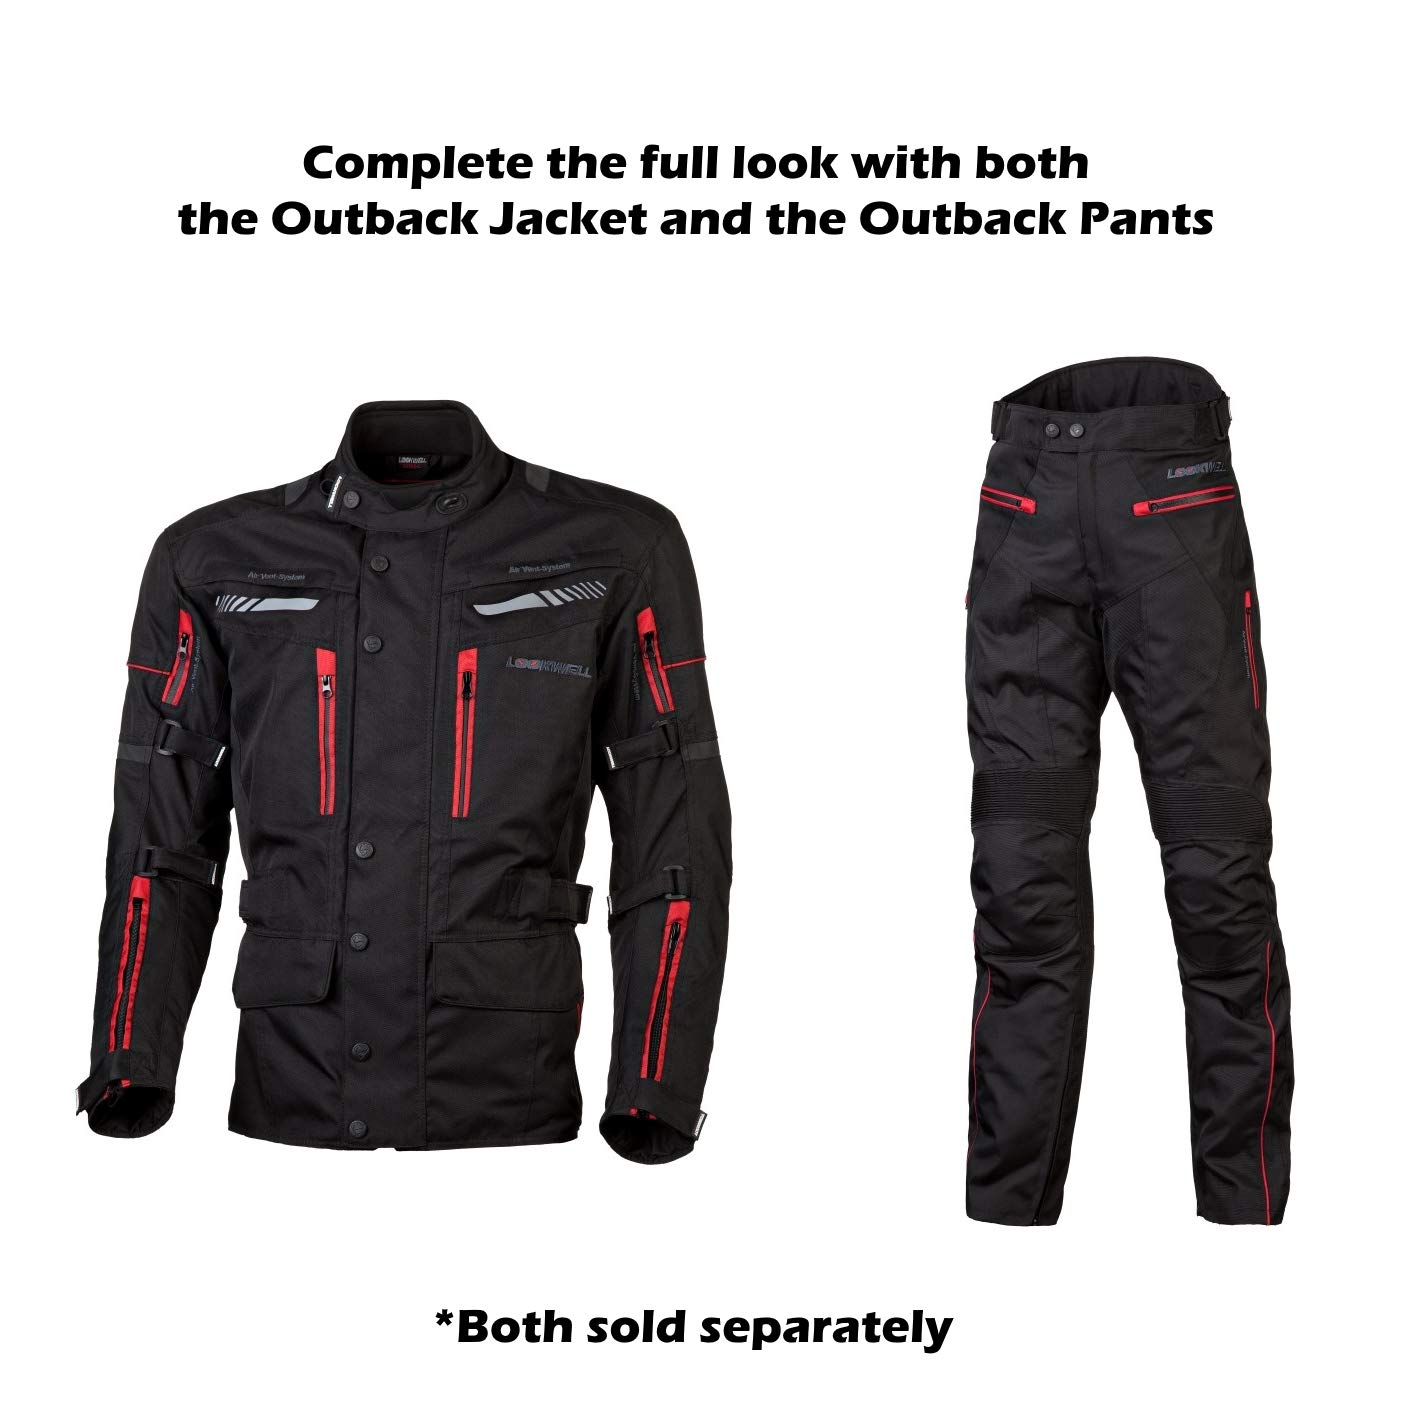 Size L Sizes XS-6XL Black//Red Lookwell Outback Textile Jacket Motorcycle and Motorbike Touring Armoured CE-Approved Protection